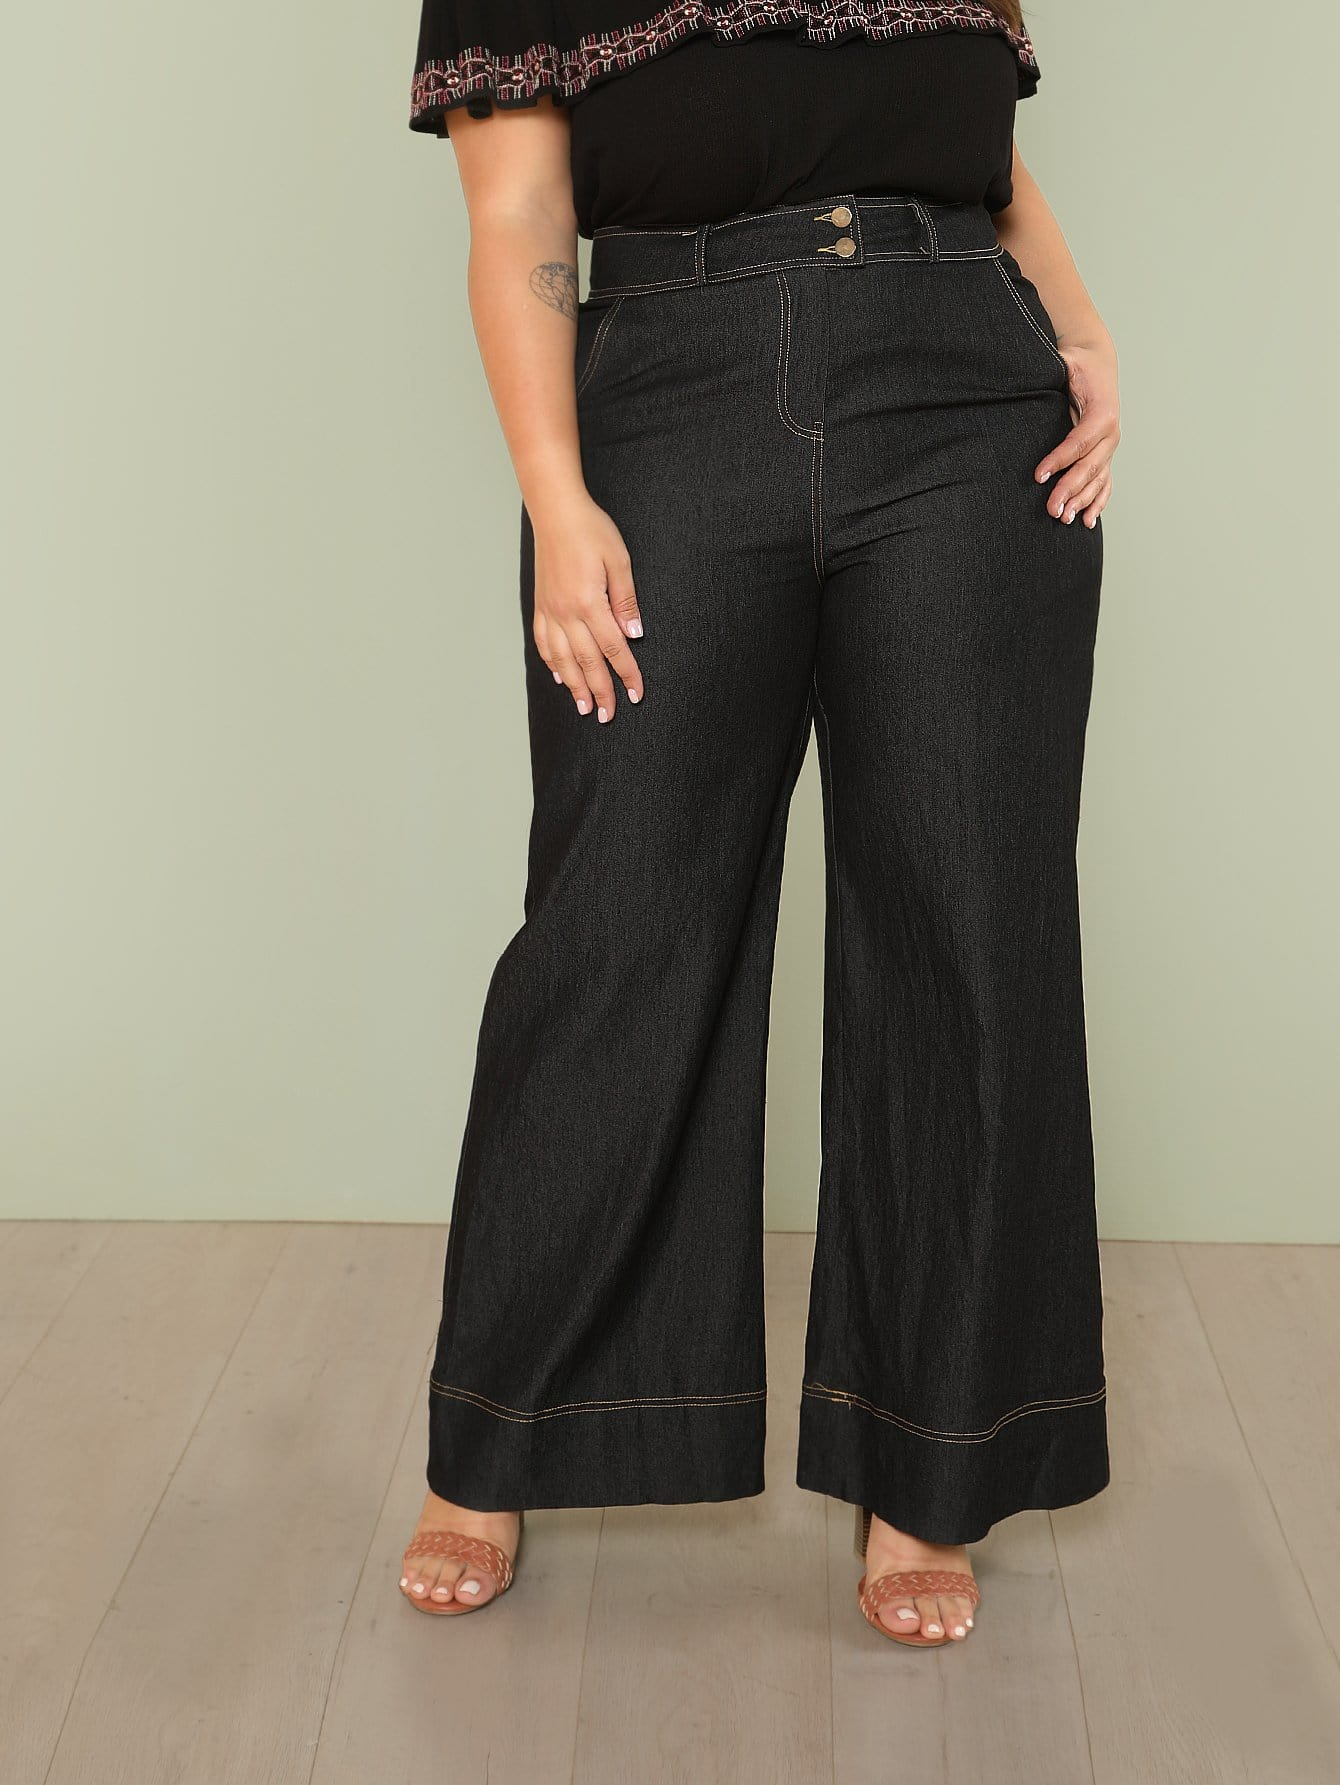 Pocket Patched Palazzo Leg Pants